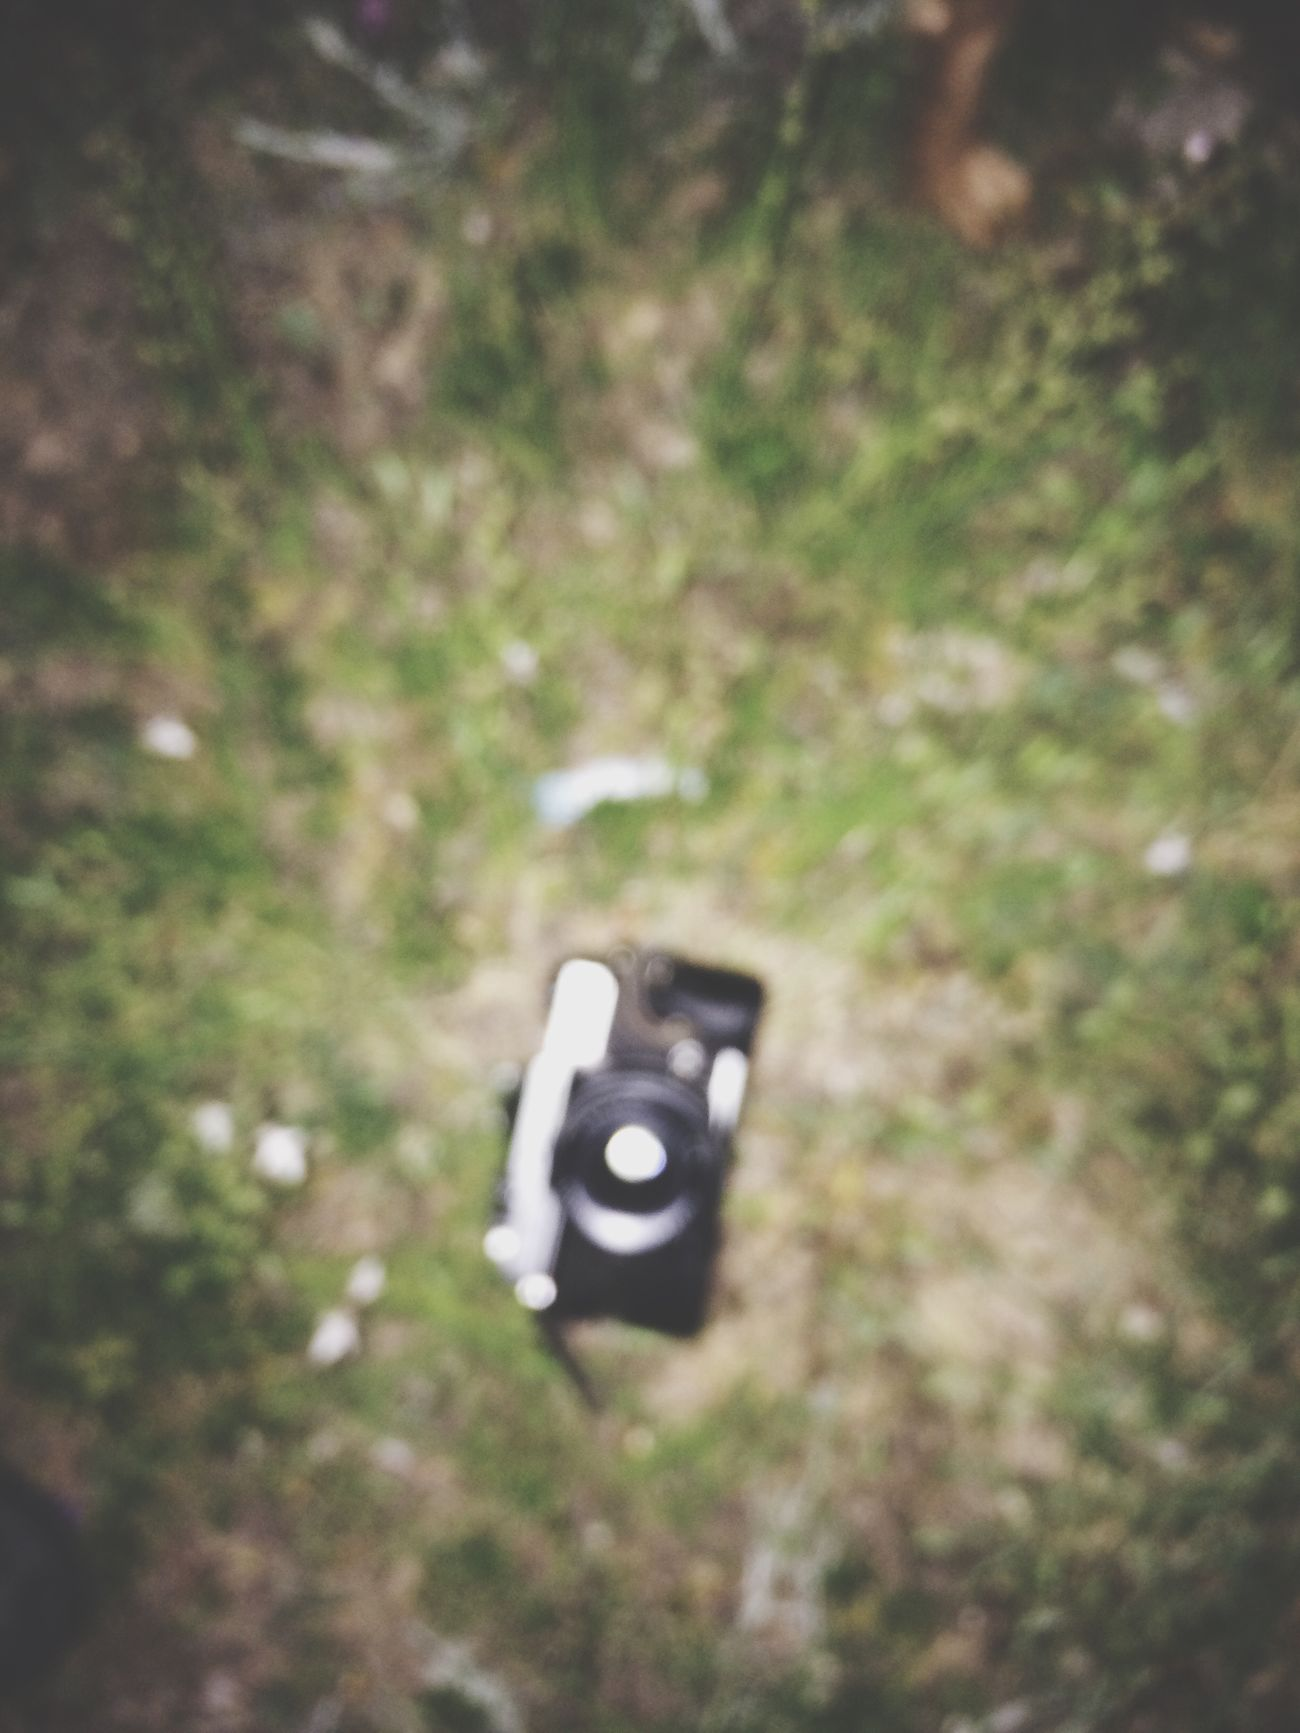 Camera - Photographic Equipment Photography Themes Technology Photographing Old-fashioned No People Day Close-up Outdoors Grass Grassy Floor Captured Moment The Street Photographer - 2017 EyeEm Awards EyeEmNewHere Break The Mold